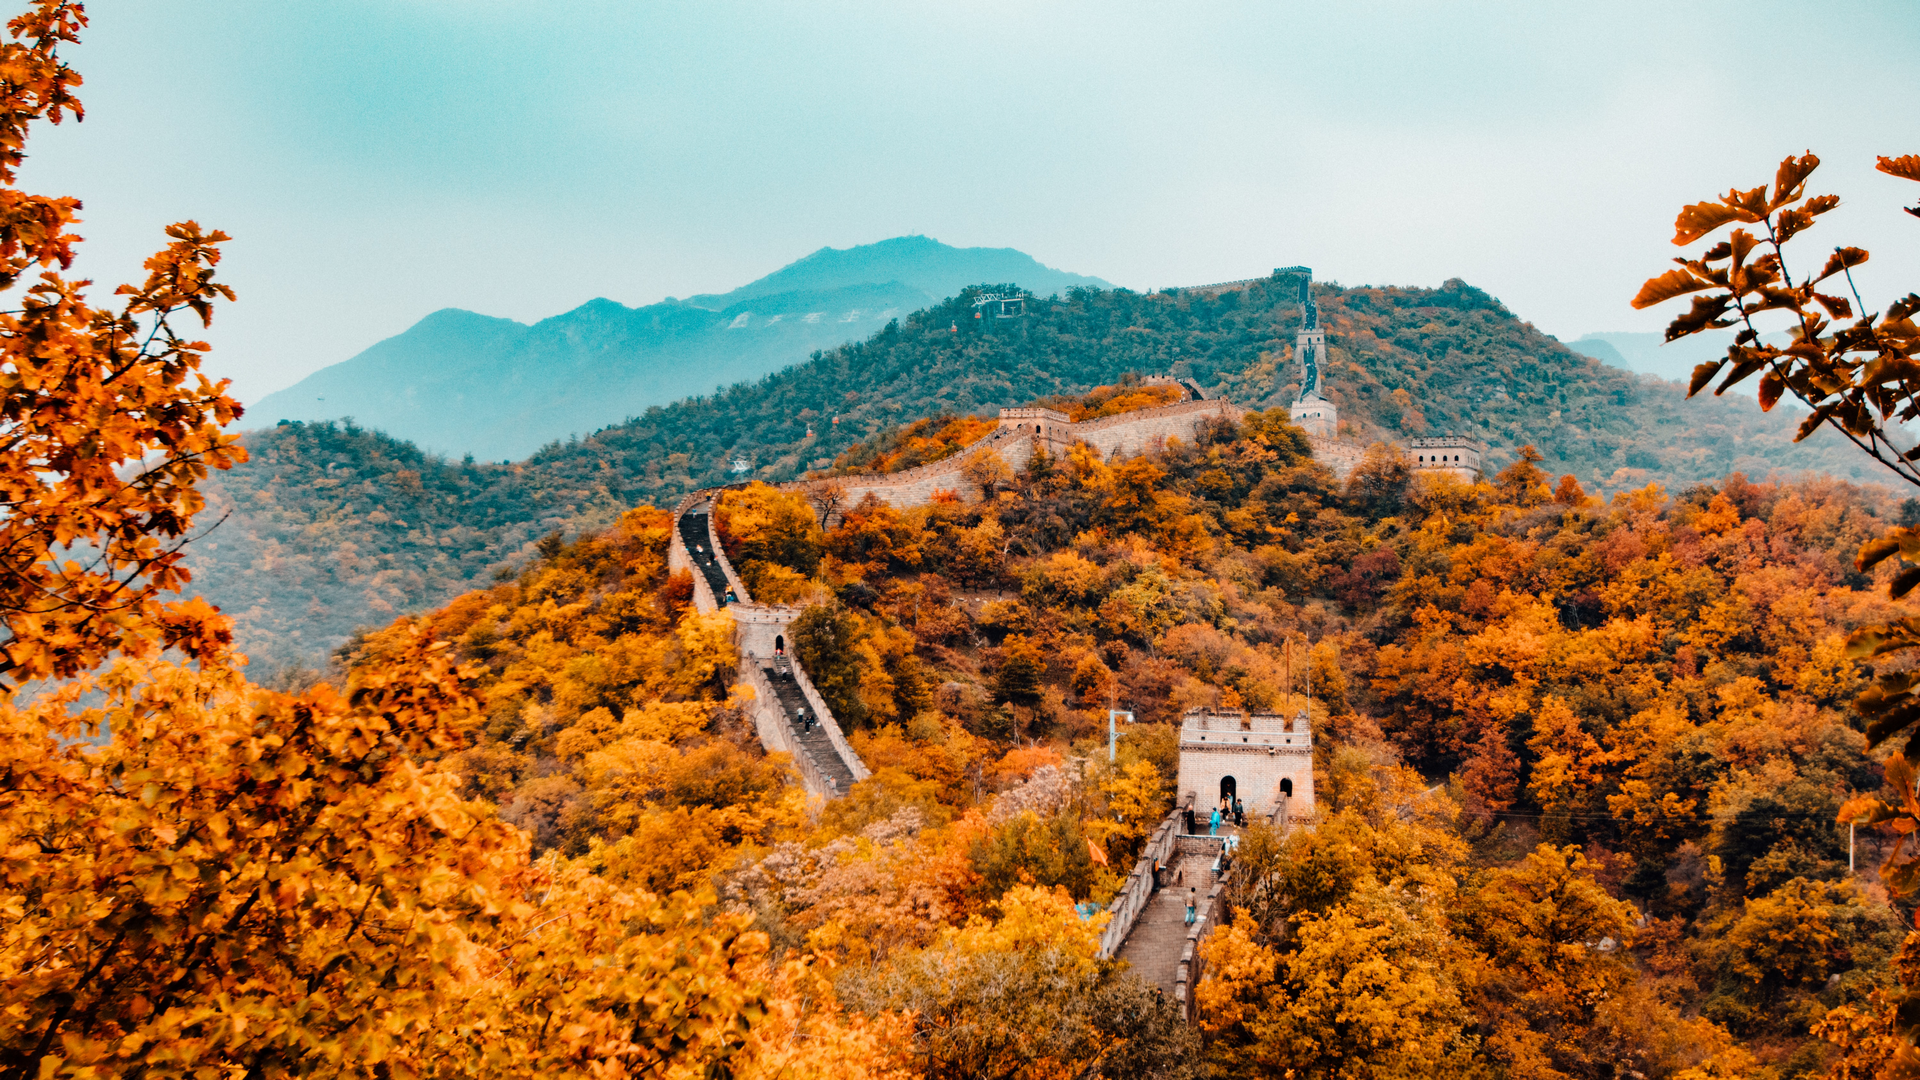 A view in China